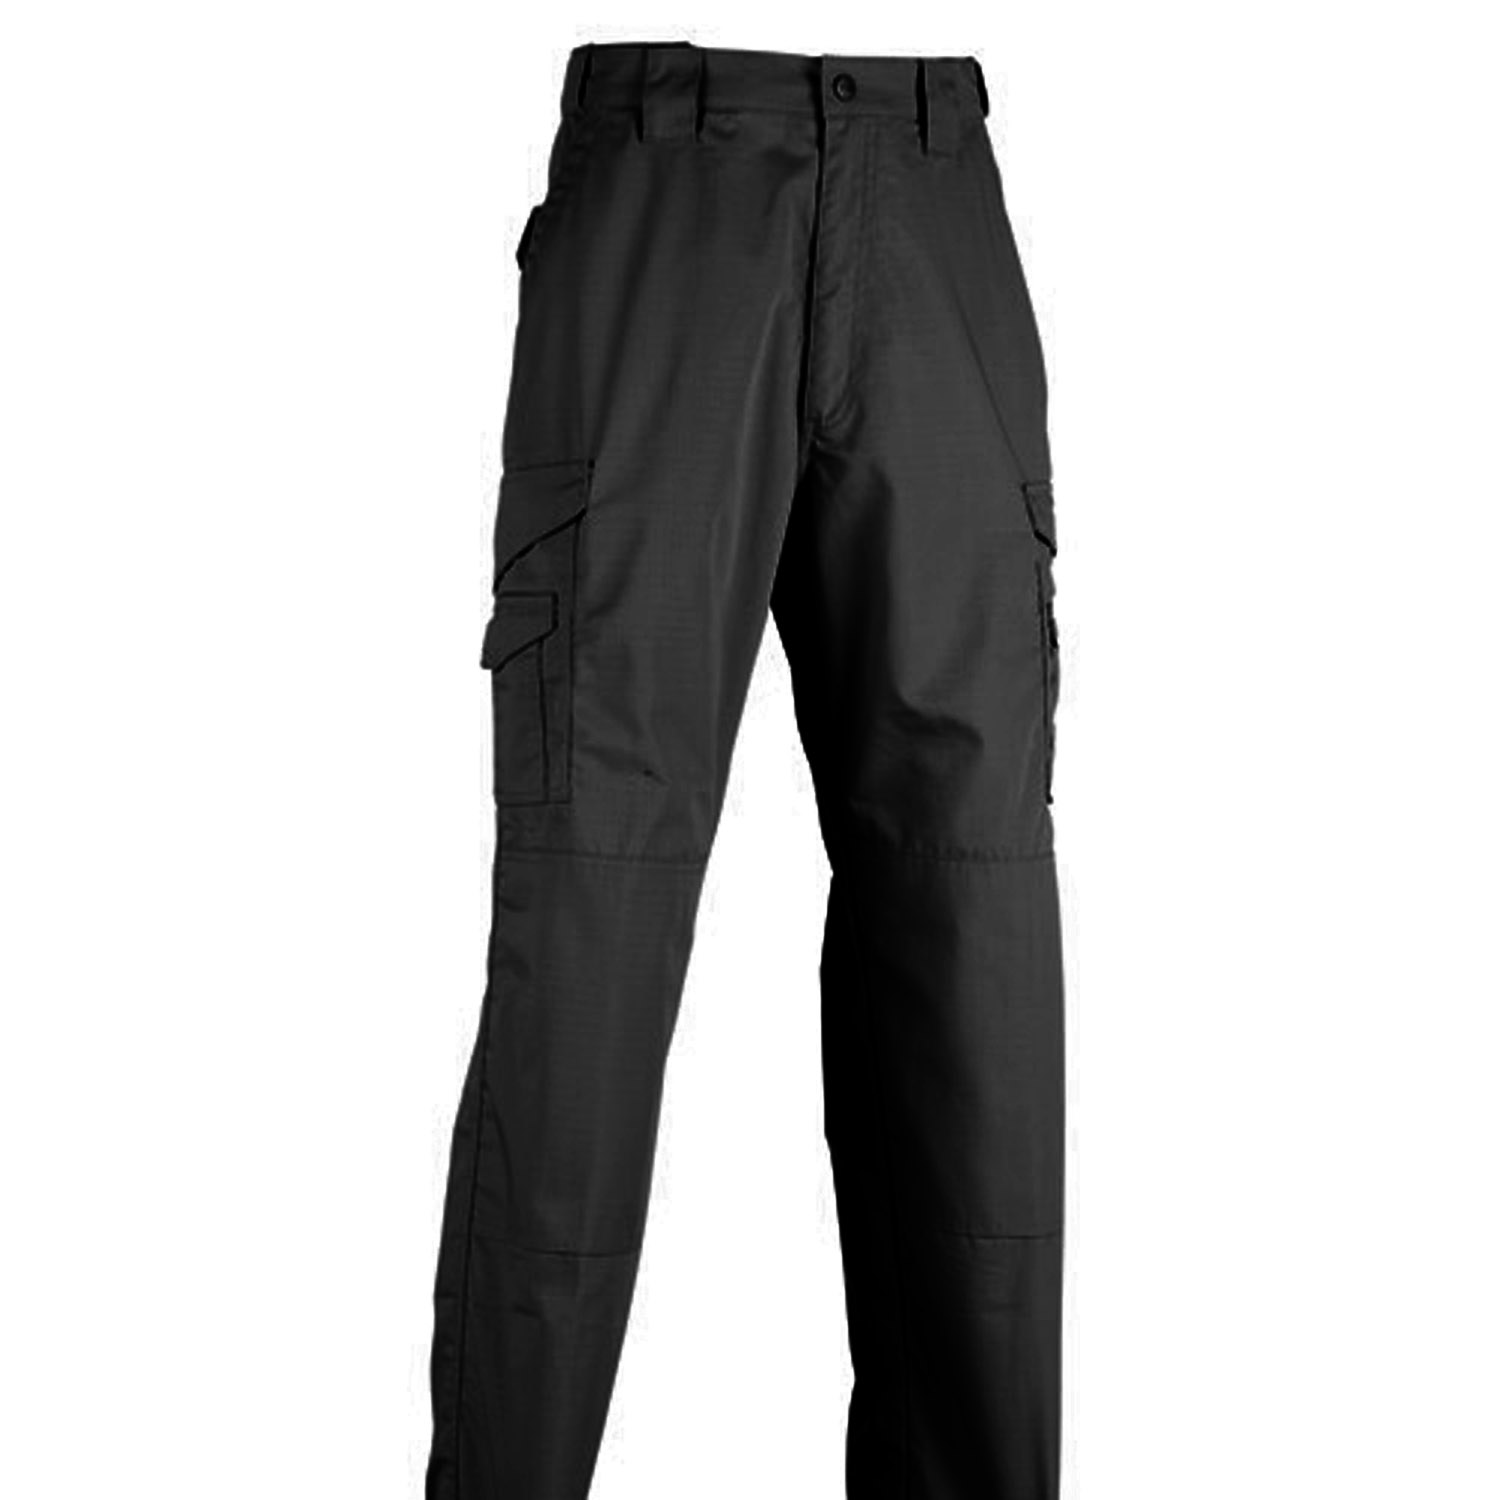 TRU-SPEC 24-7 Series Original Tactical Pants